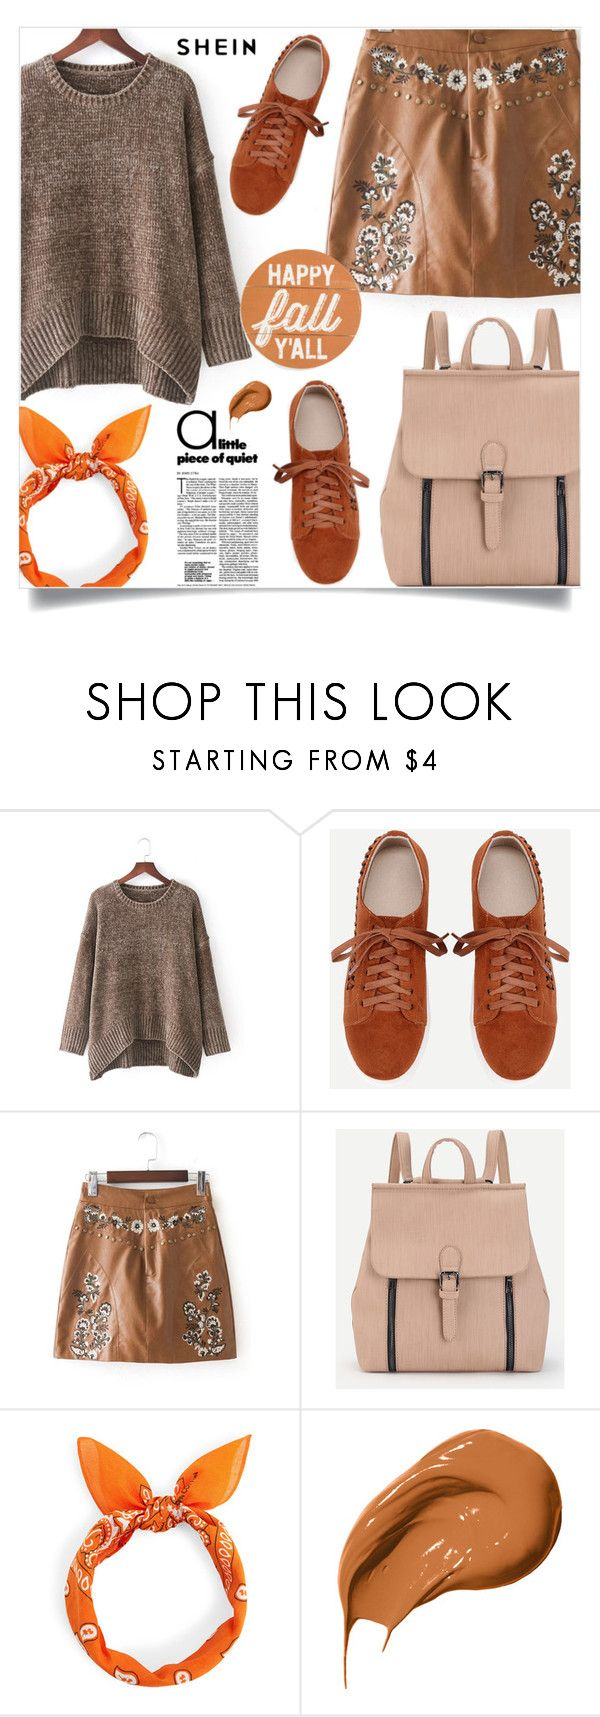 """Happy fall y'all!"" by samra-bv ❤ liked on Polyvore featuring Bobbi Brown Cosmetics"